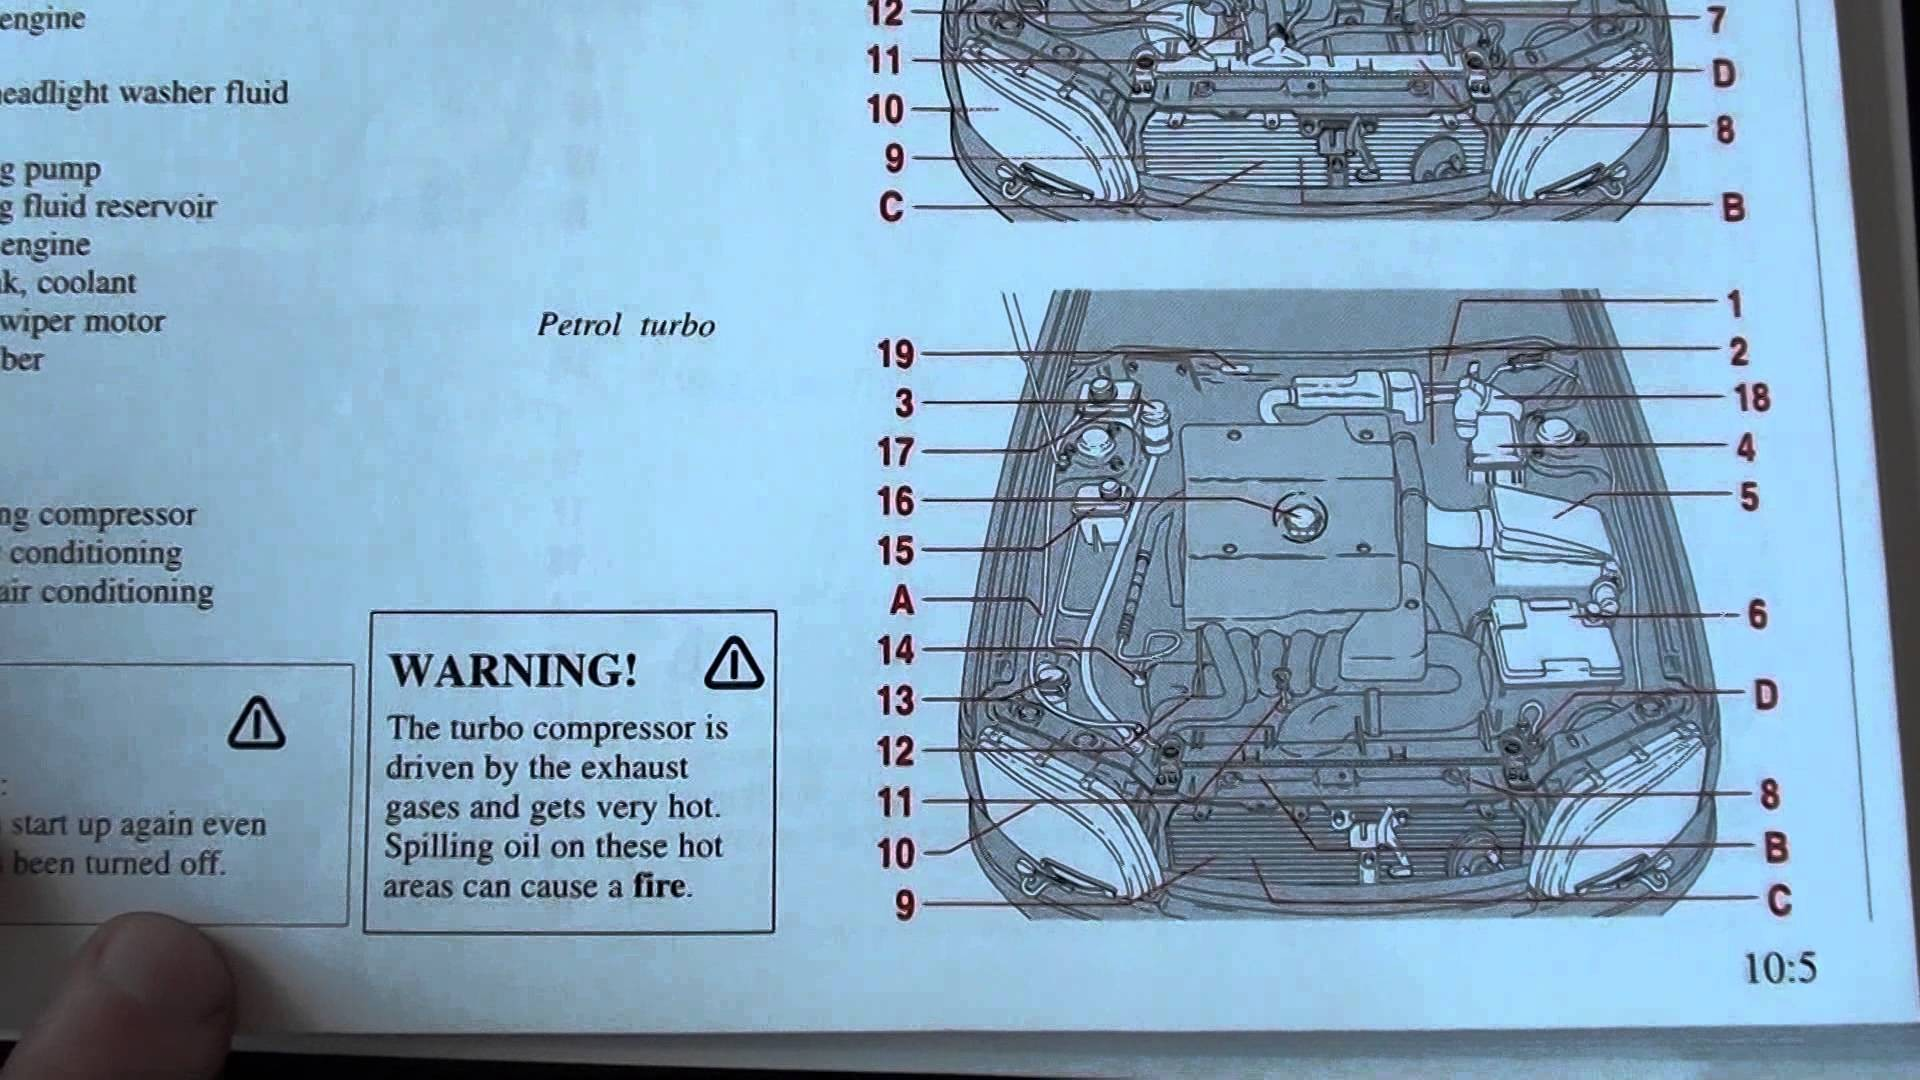 2006 Jetta Engine Diagram Wiring Library Vw S40